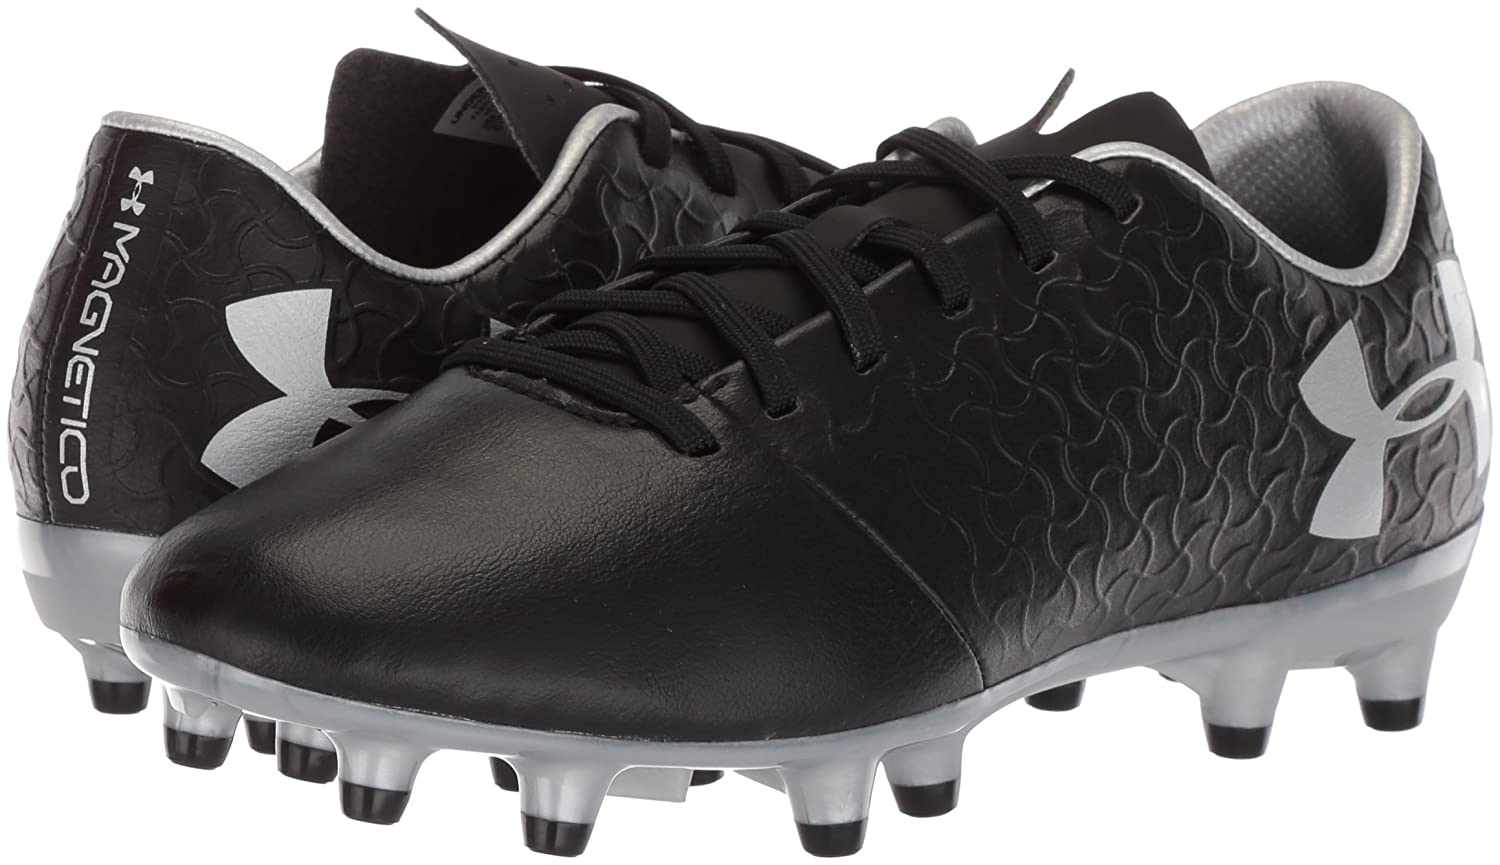 Under Armour Magnetico Select JR Firm Ground Sneaker B0728BWY3Y 6 M US Black (001)/Metallic Silver